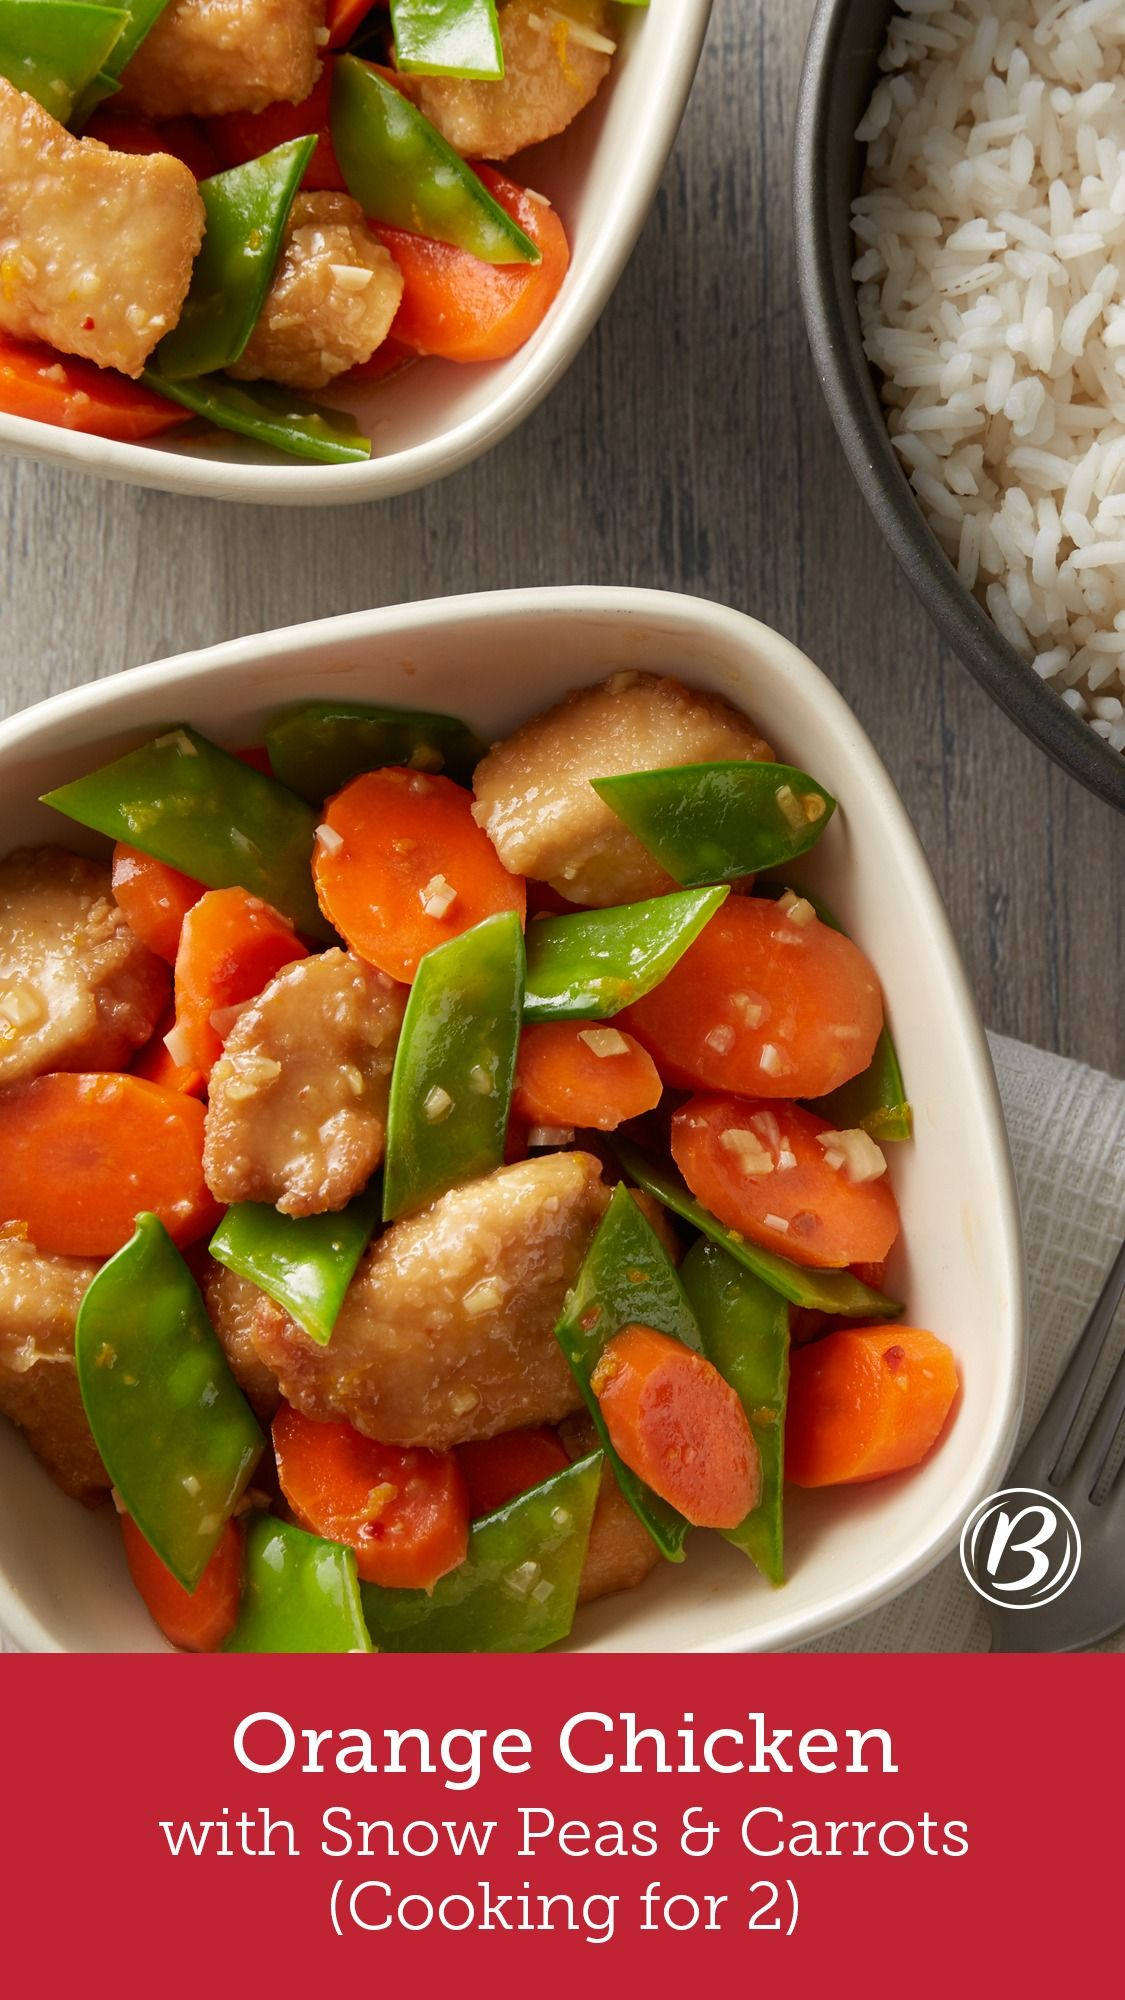 Orange Chicken with Snow Peas and Carrots (Cooking for 2) #chinesemeals